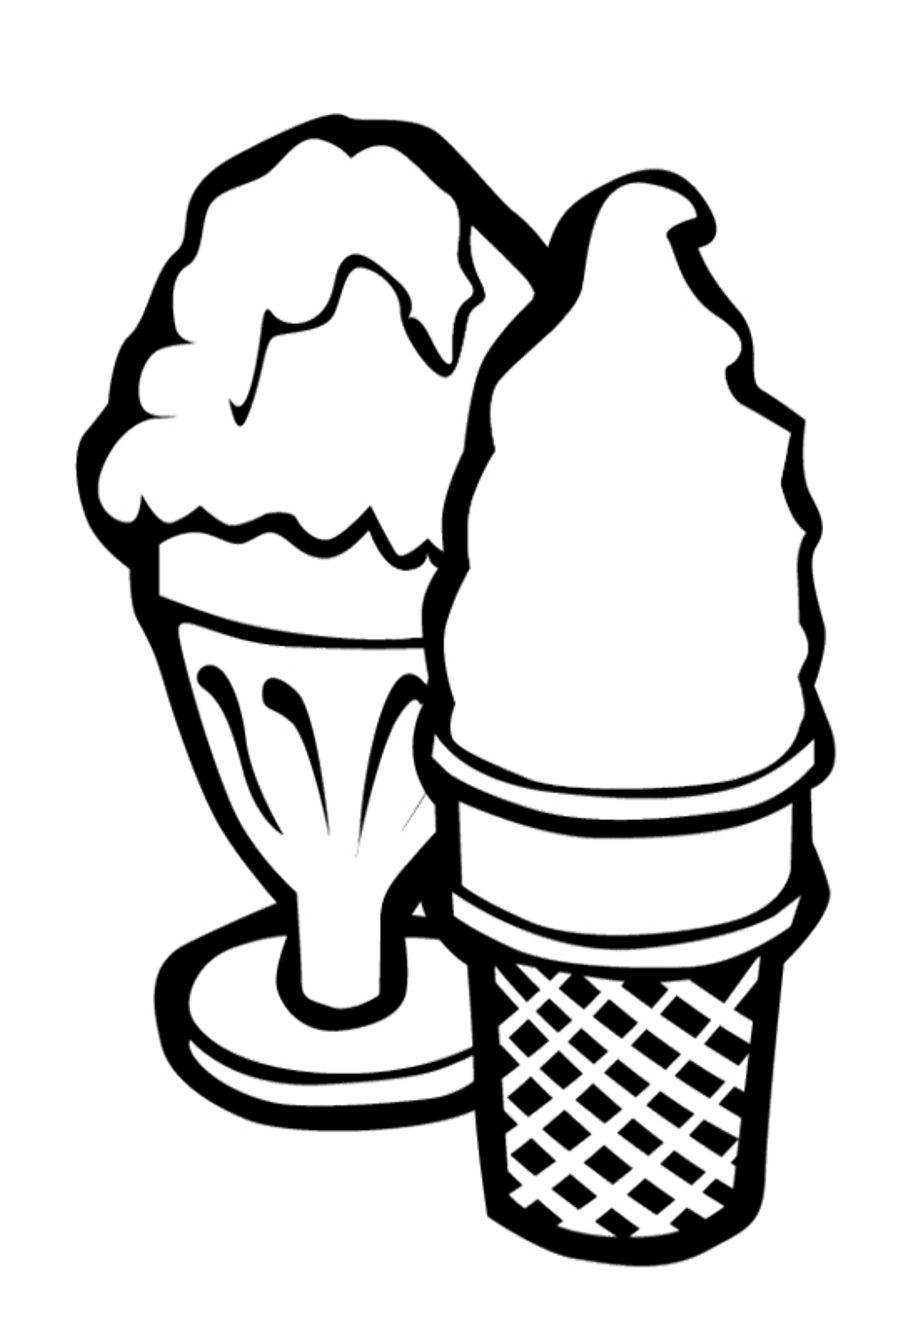 coloring pages of ice cream coloring pages for ice cream cone pages ice coloring cream of